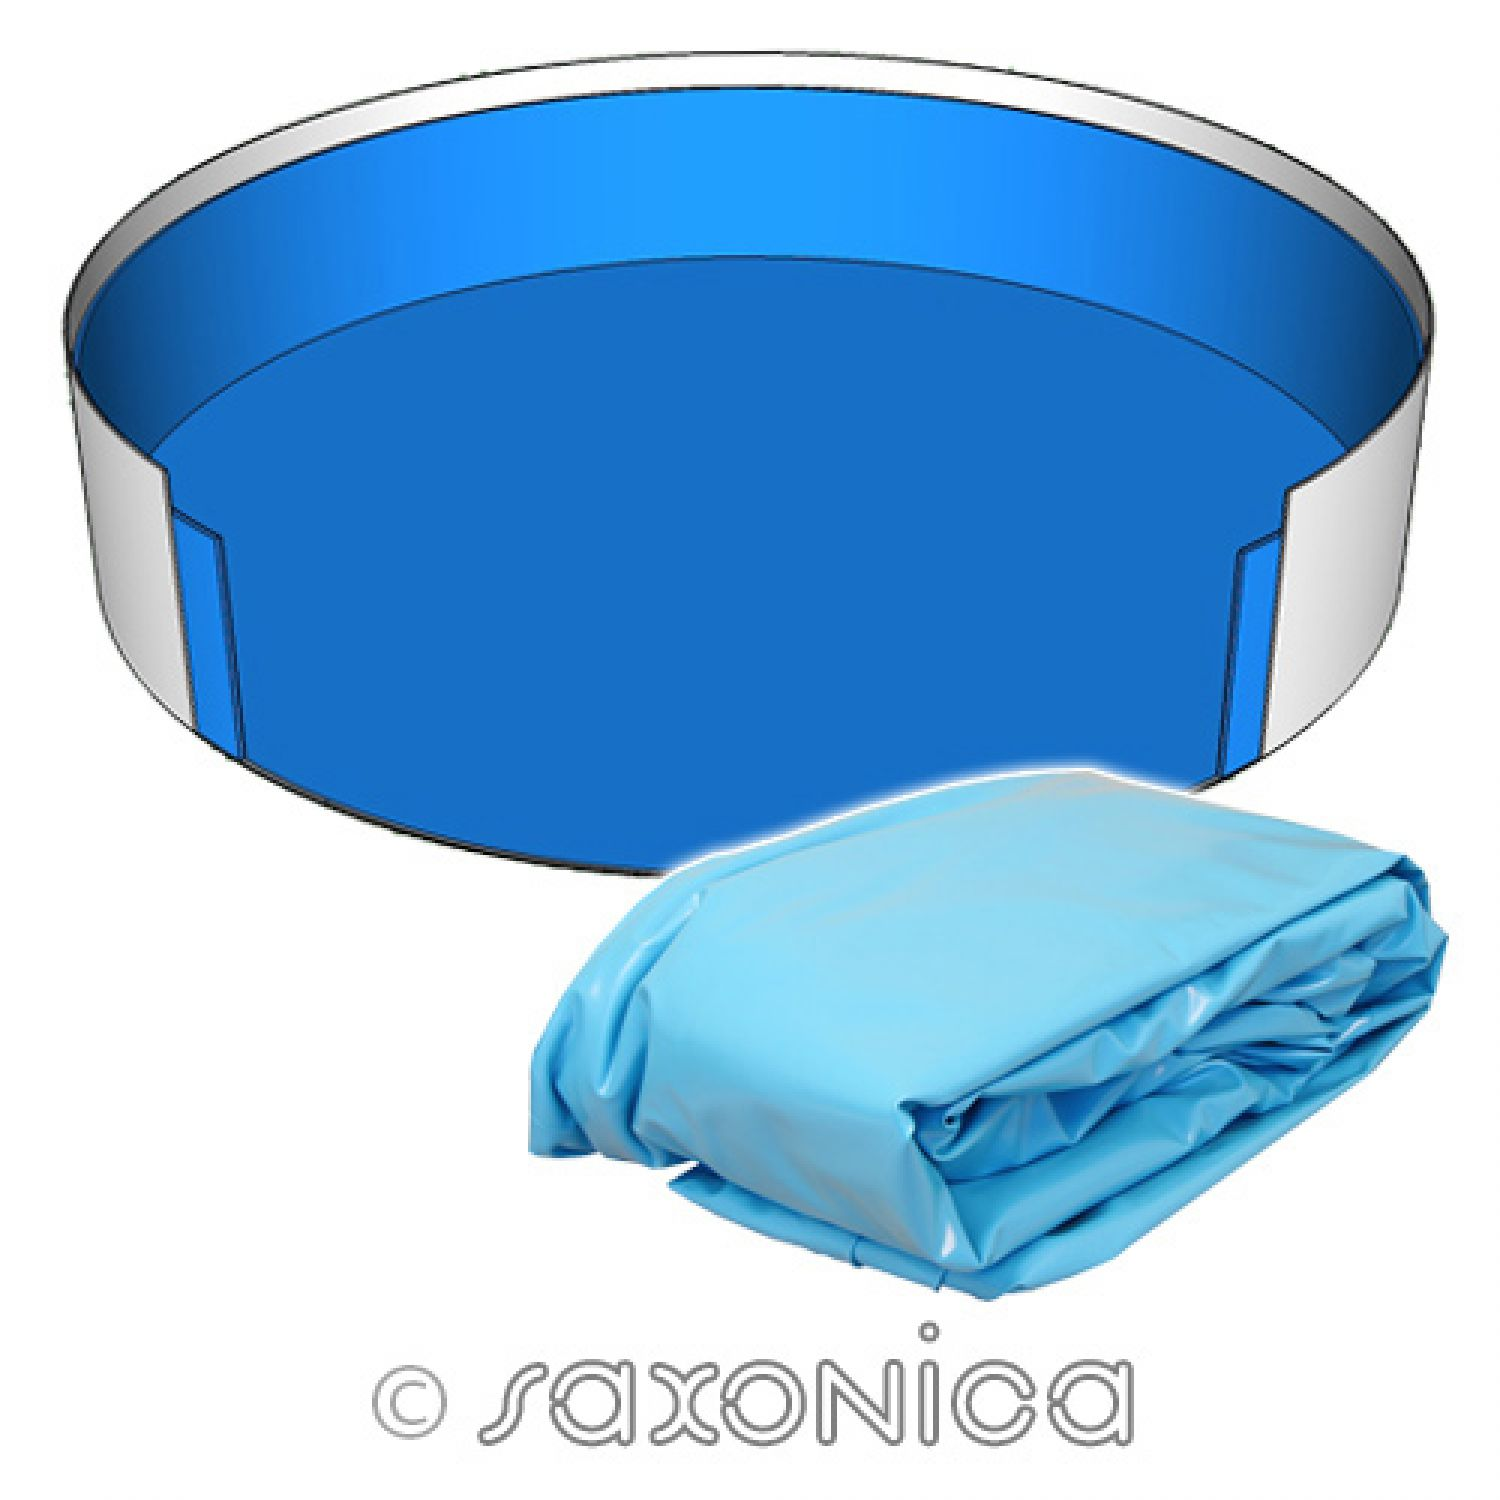 Poolfolie innenh lle rundpool 300 x 120 cm 0 6 mm blau for Poolfolie blau